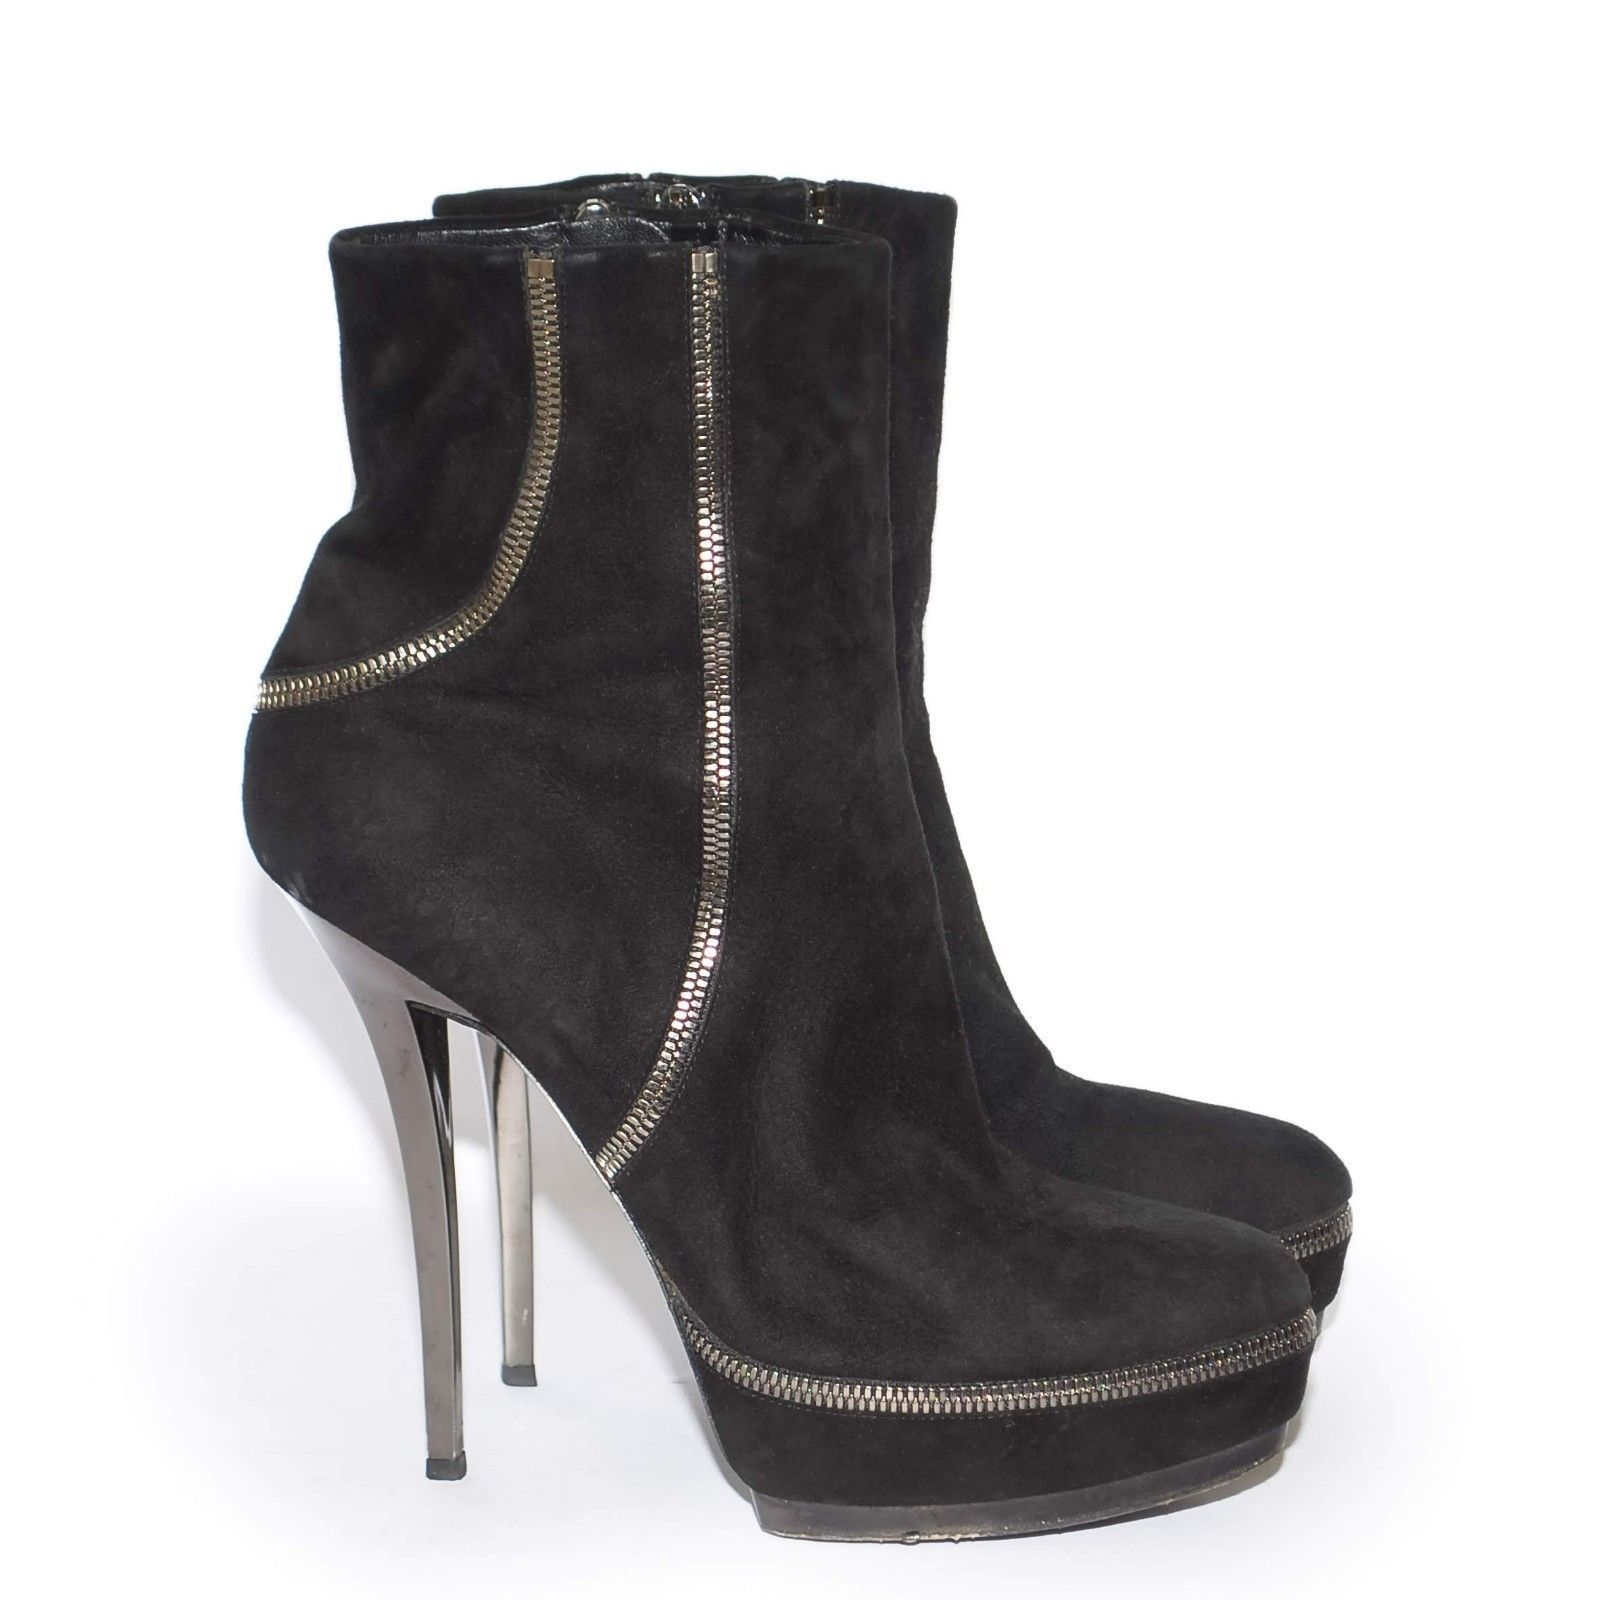 ff84b11111d GUCCI Black Suede High Heels Ankle Boots Stilettos Platform Zip Up Booties  US 8 -  275.51